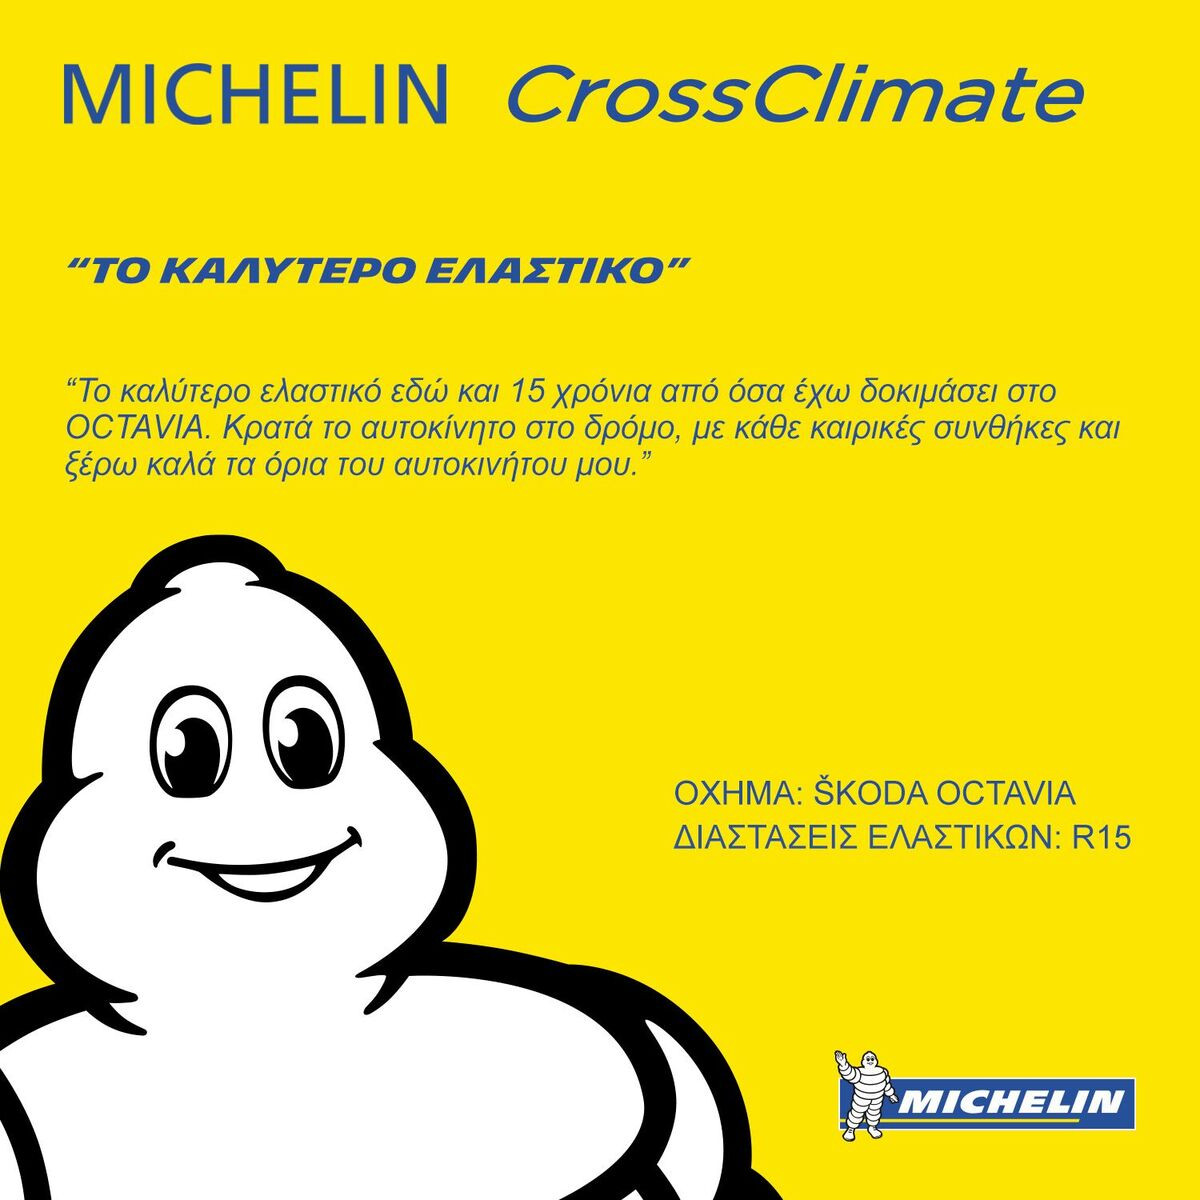 CROSSCLIMATE MICHELIN